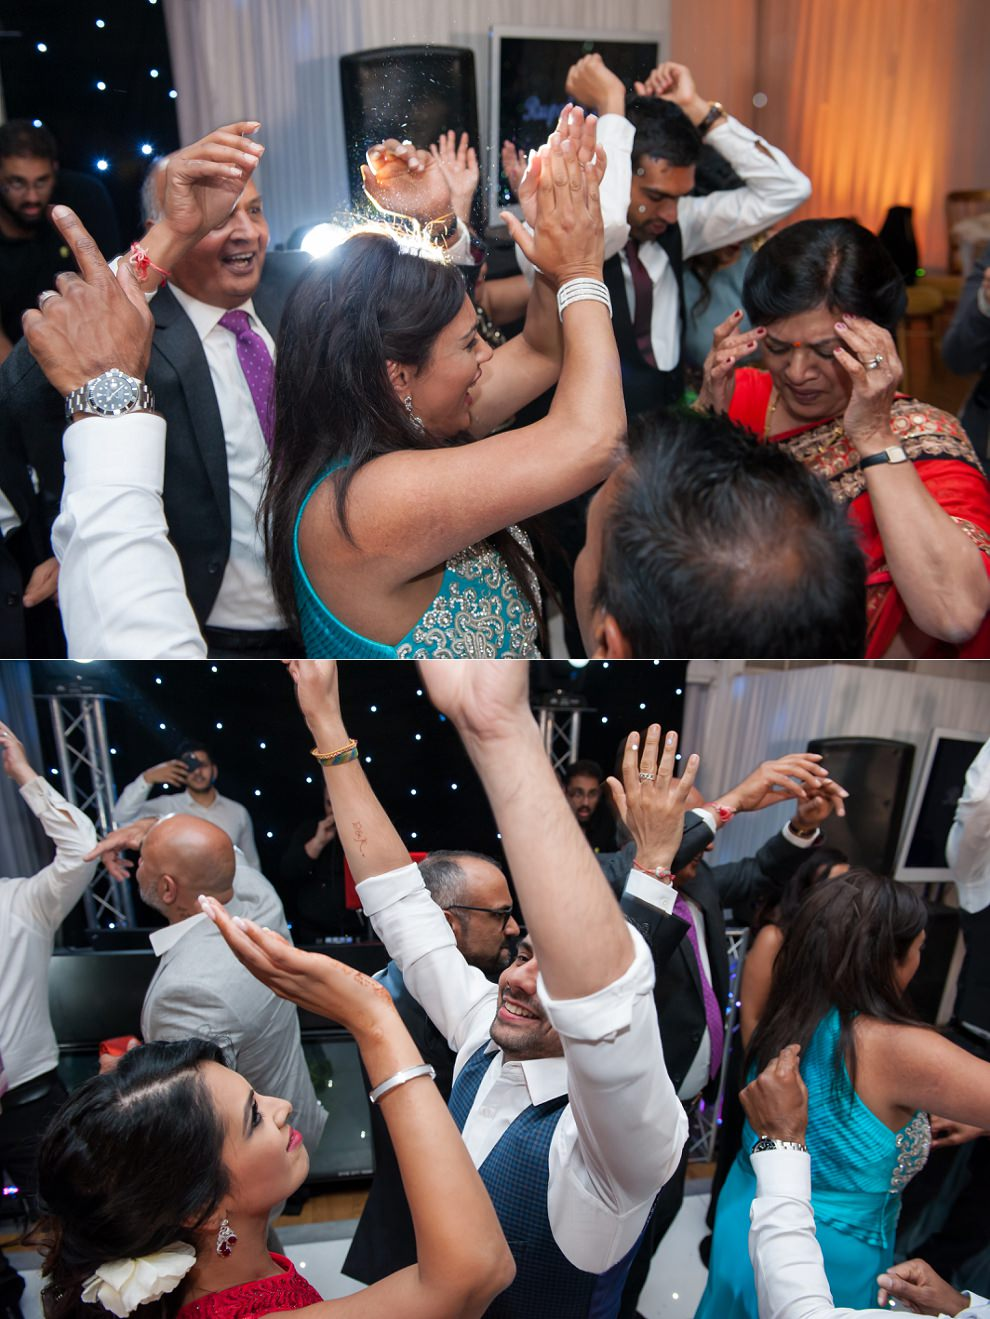 Boreham-House-Wedding-Essex-Rupal Dipen-73